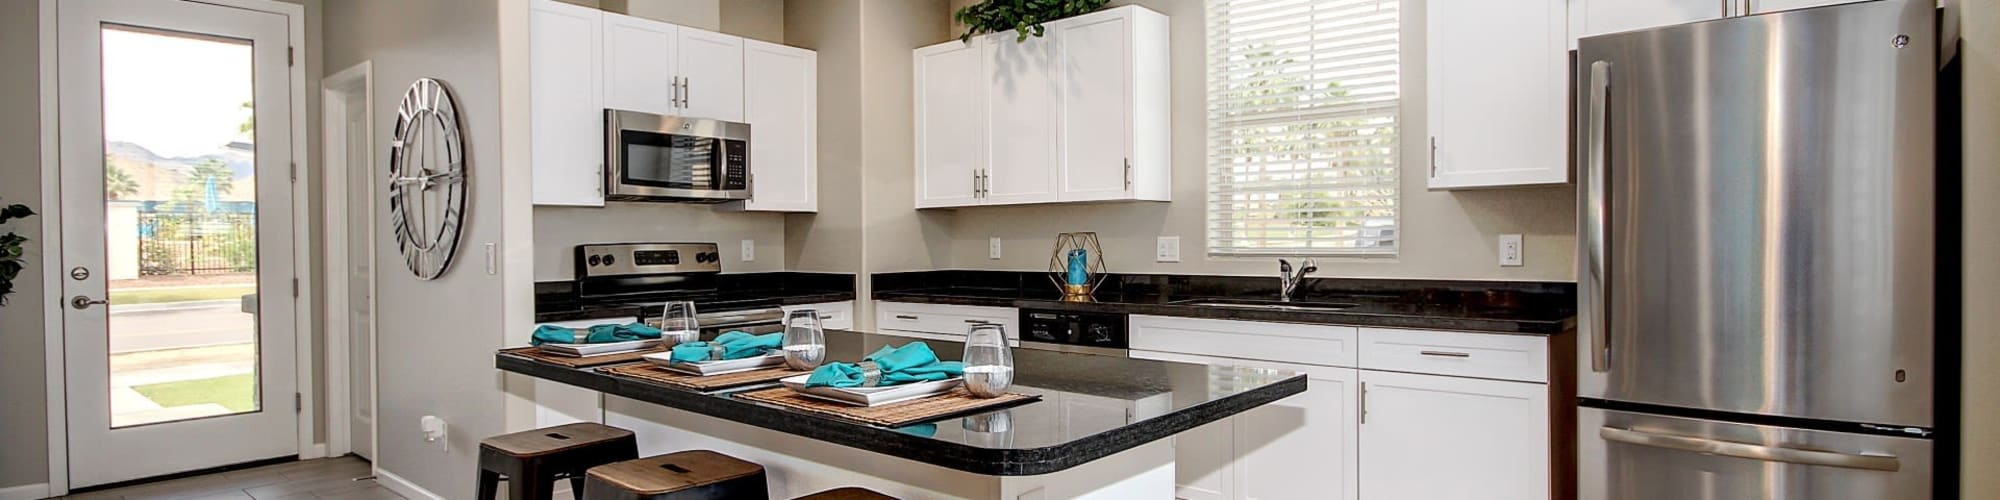 Reviews at BB Living at Val Vista in Gilbert, Arizona